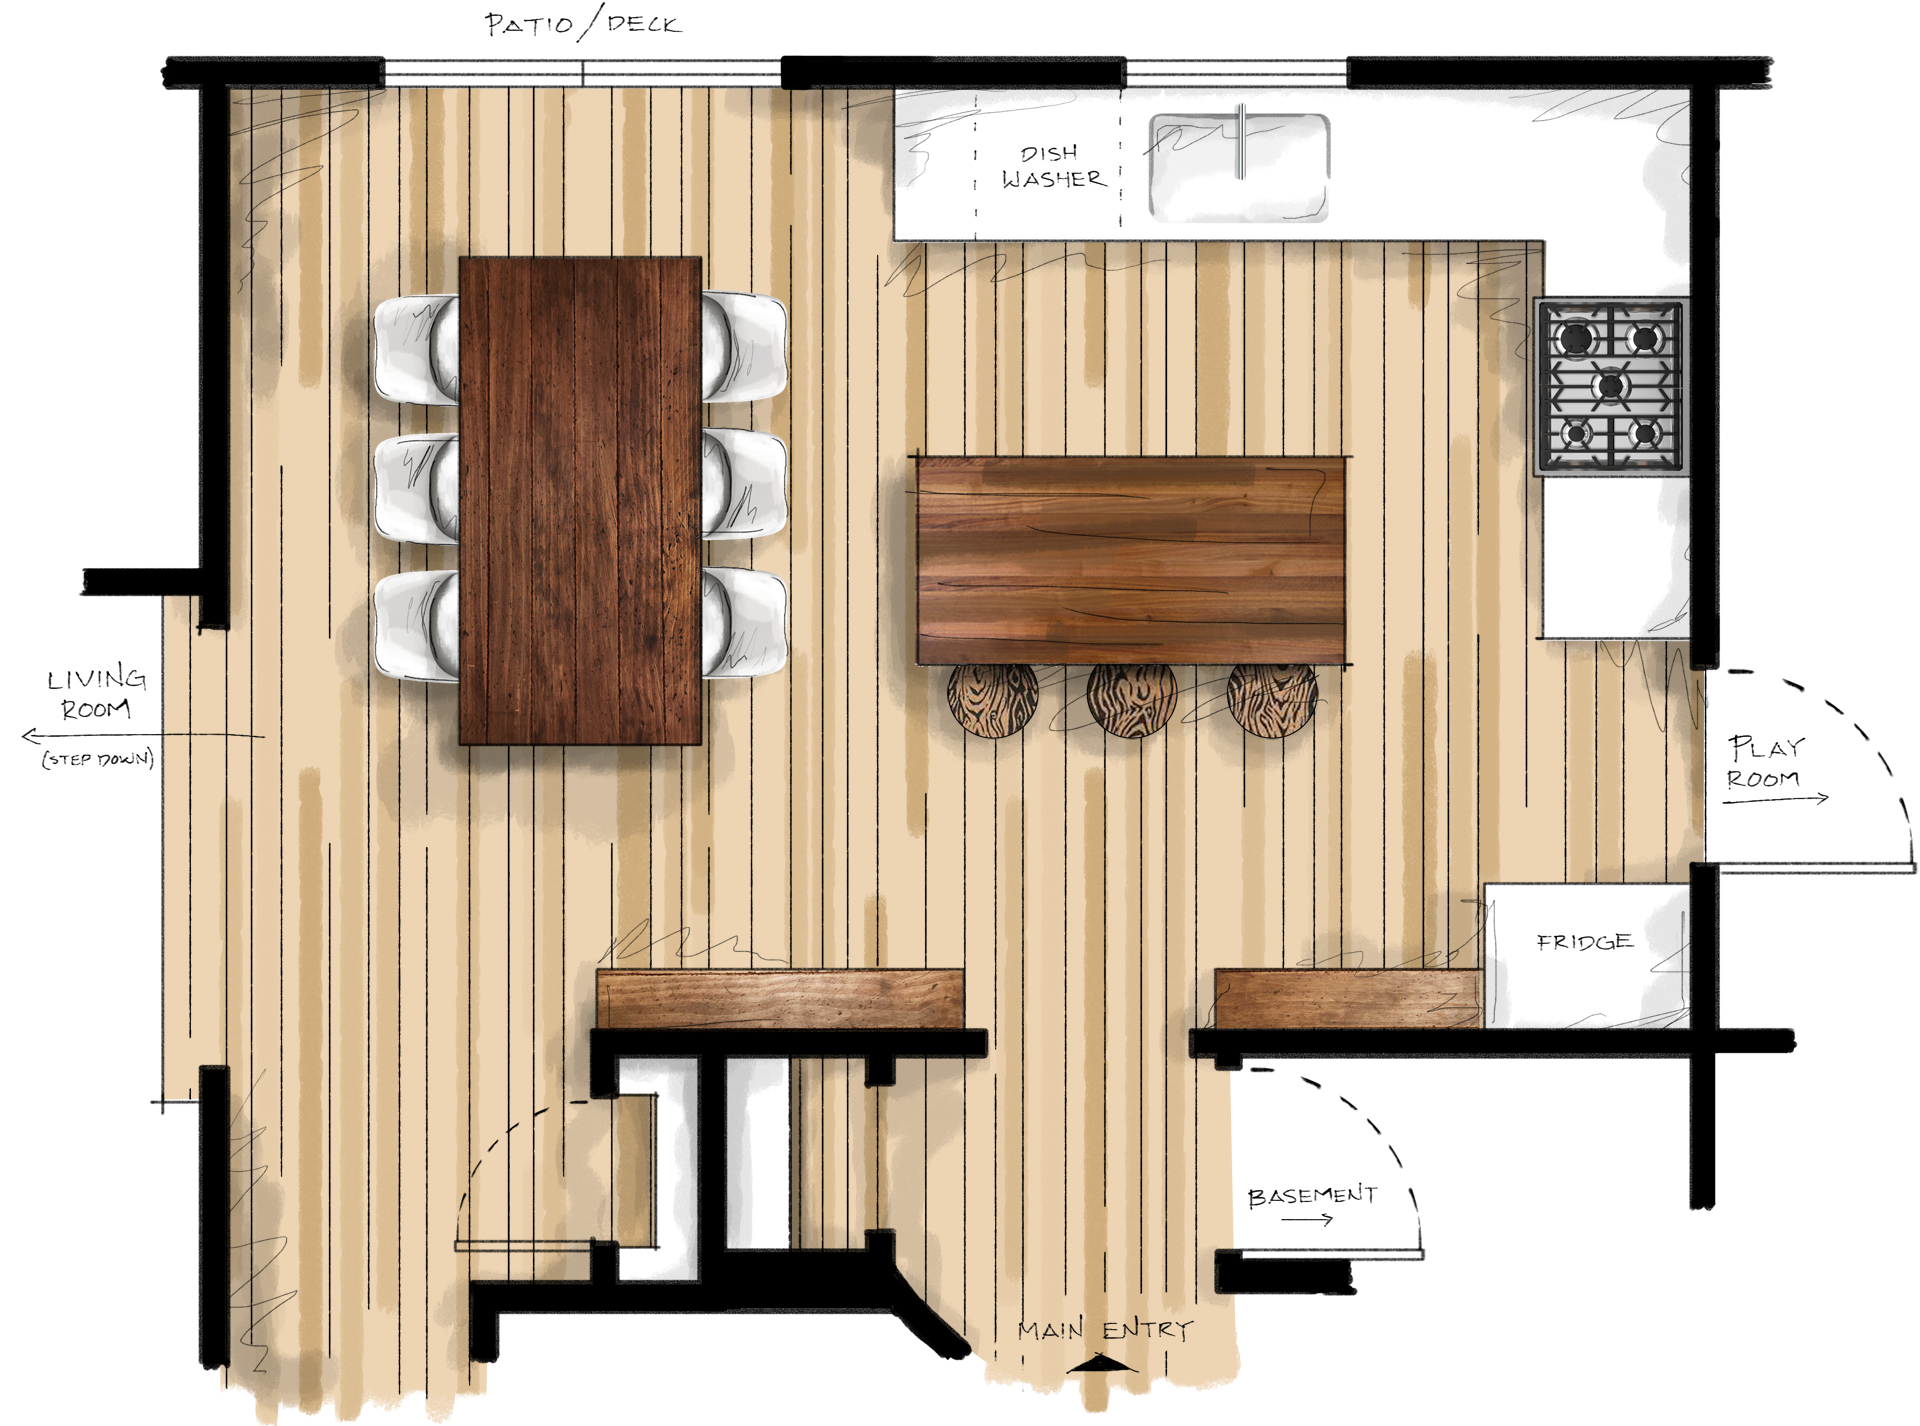 Kitchen After - Plan View